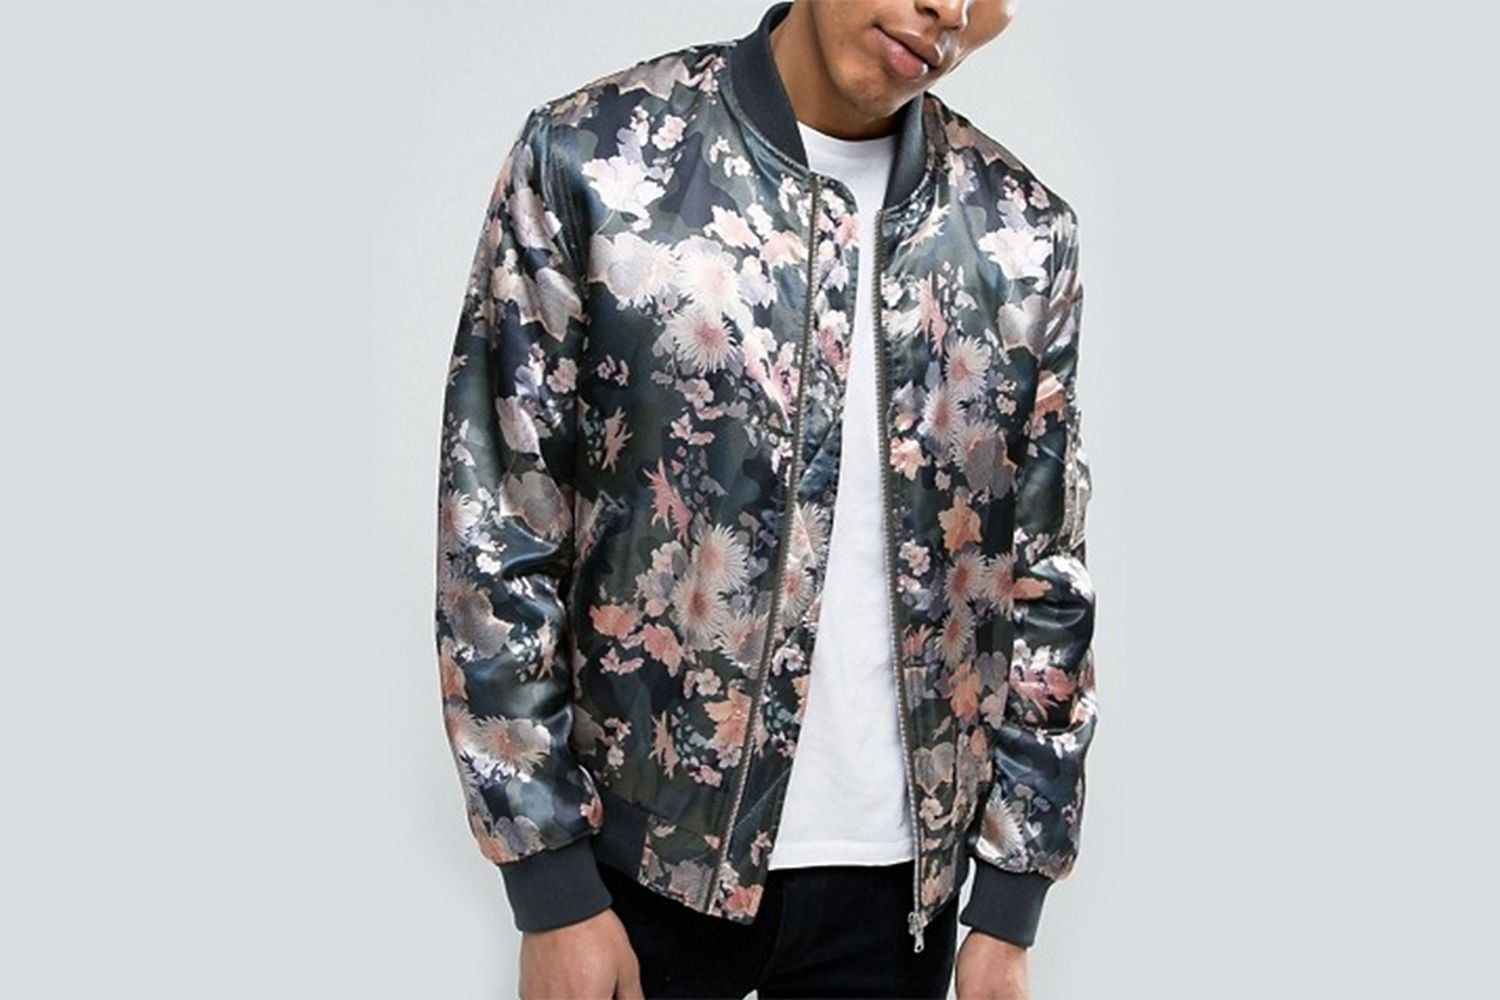 Bomber Jacket With Floral Camo Print